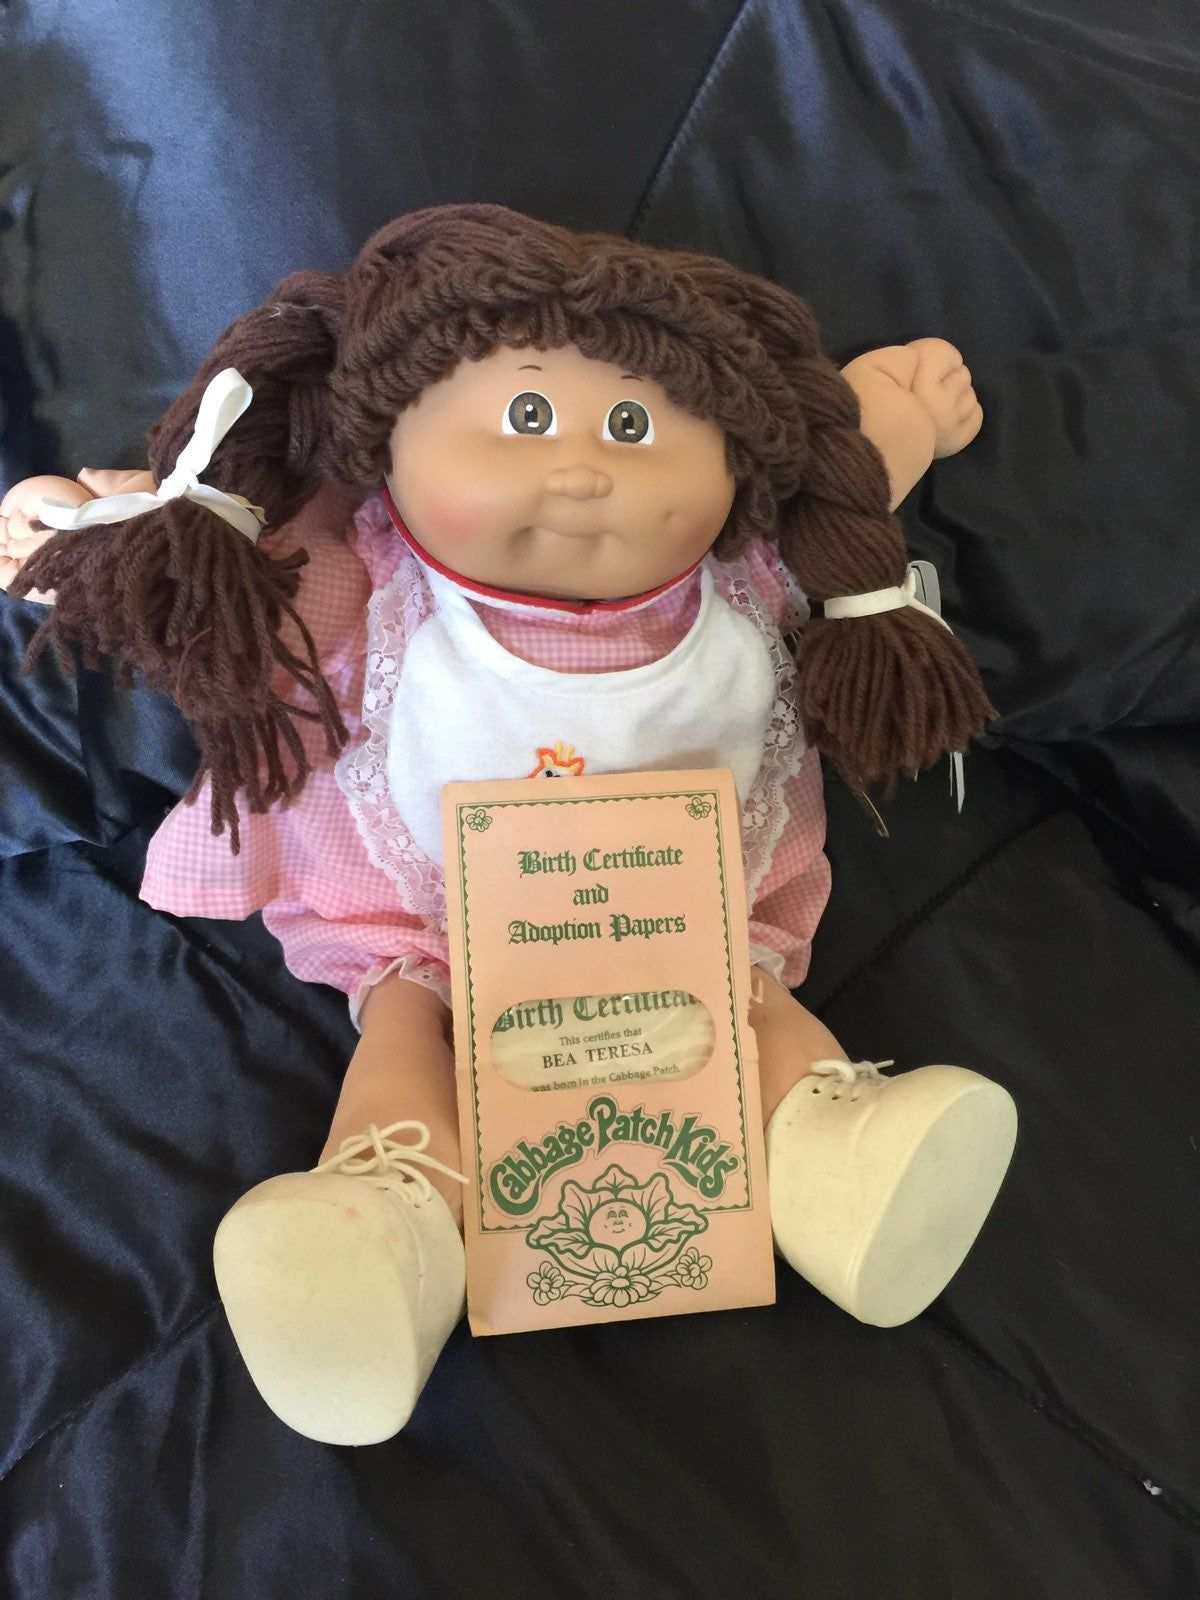 Original 1985 Cabbage Patch Collectible Doll With Birth Certificate And Adoption Papers Bea Te Cabbage Patch Kids Dolls Cabbage Patch Dolls Cabbage Patch Kids